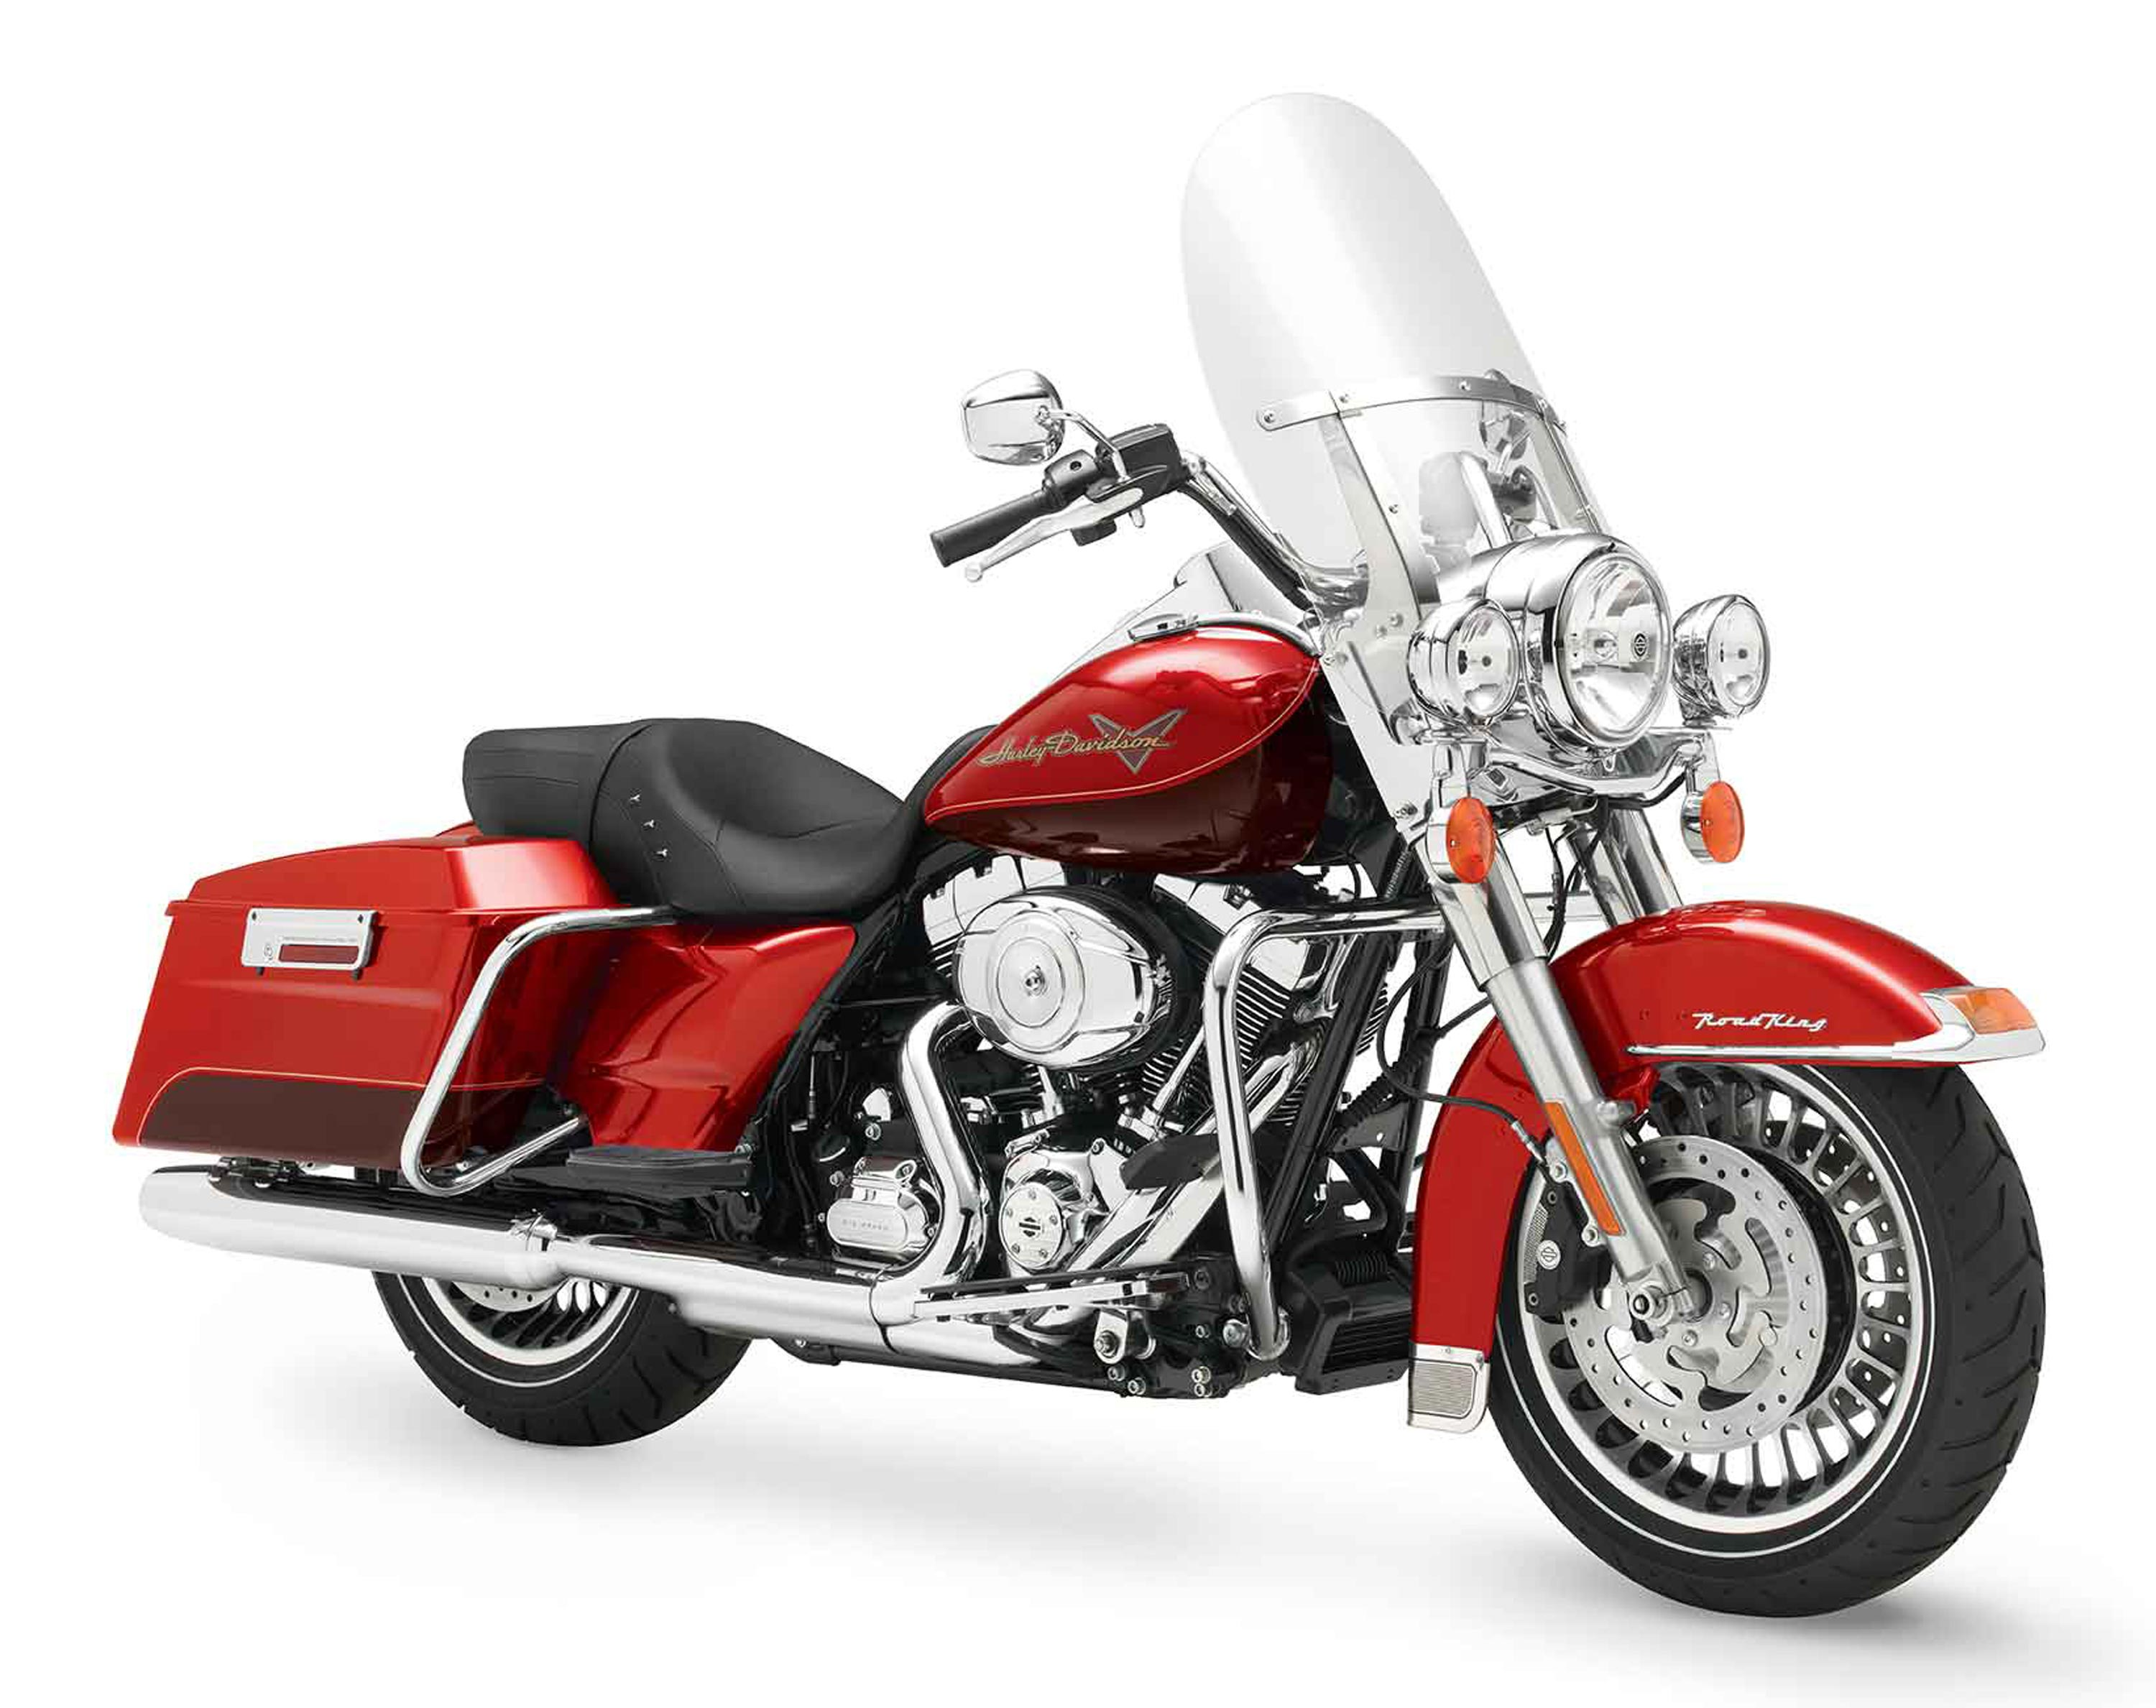 Harley-Davidson FLHR Road King 110th Anniversary 2013 images #81562